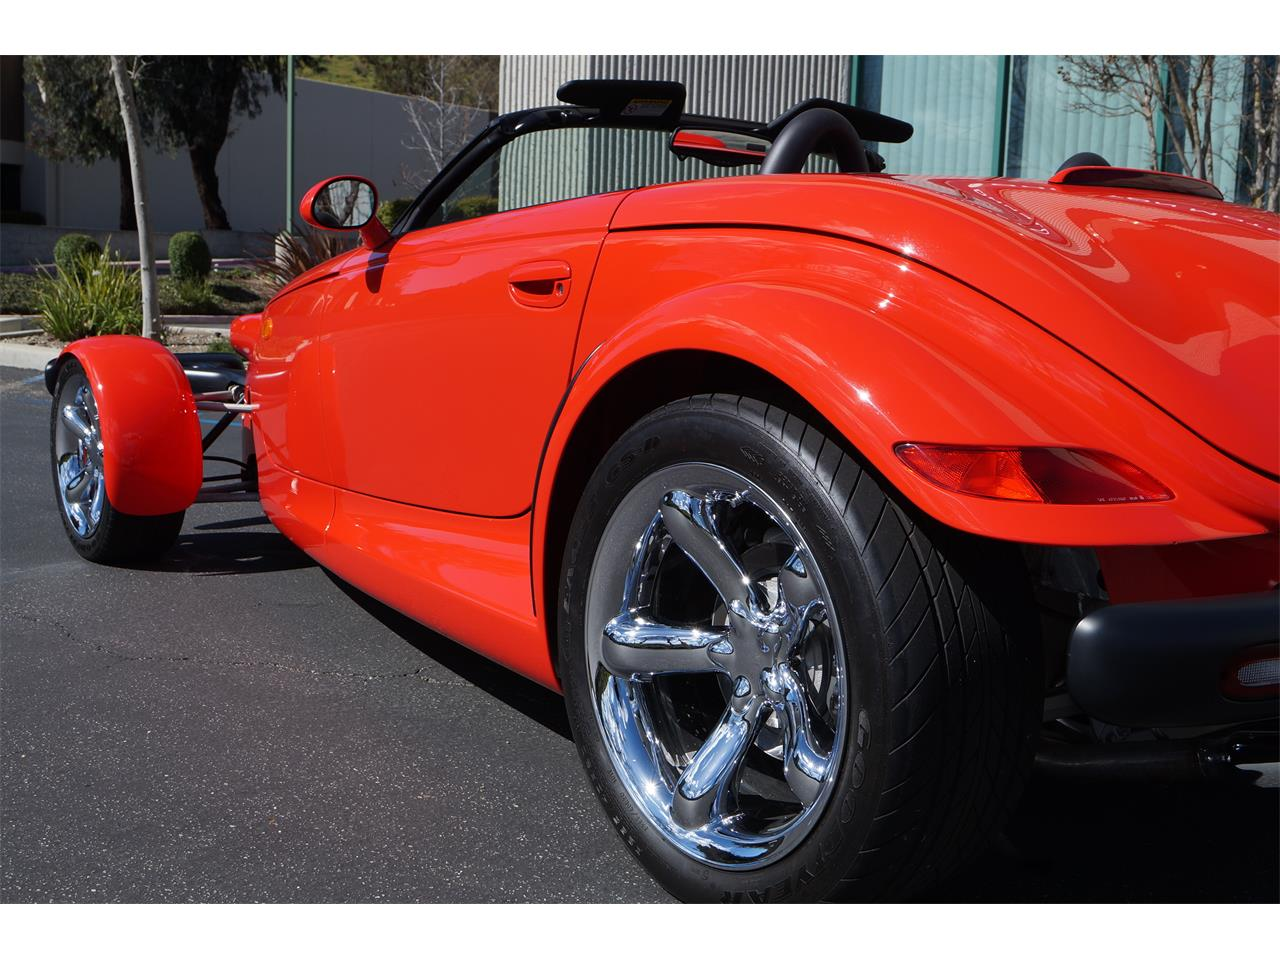 2000 Plymouth Prowler for sale in Thousand Oaks, CA – photo 41